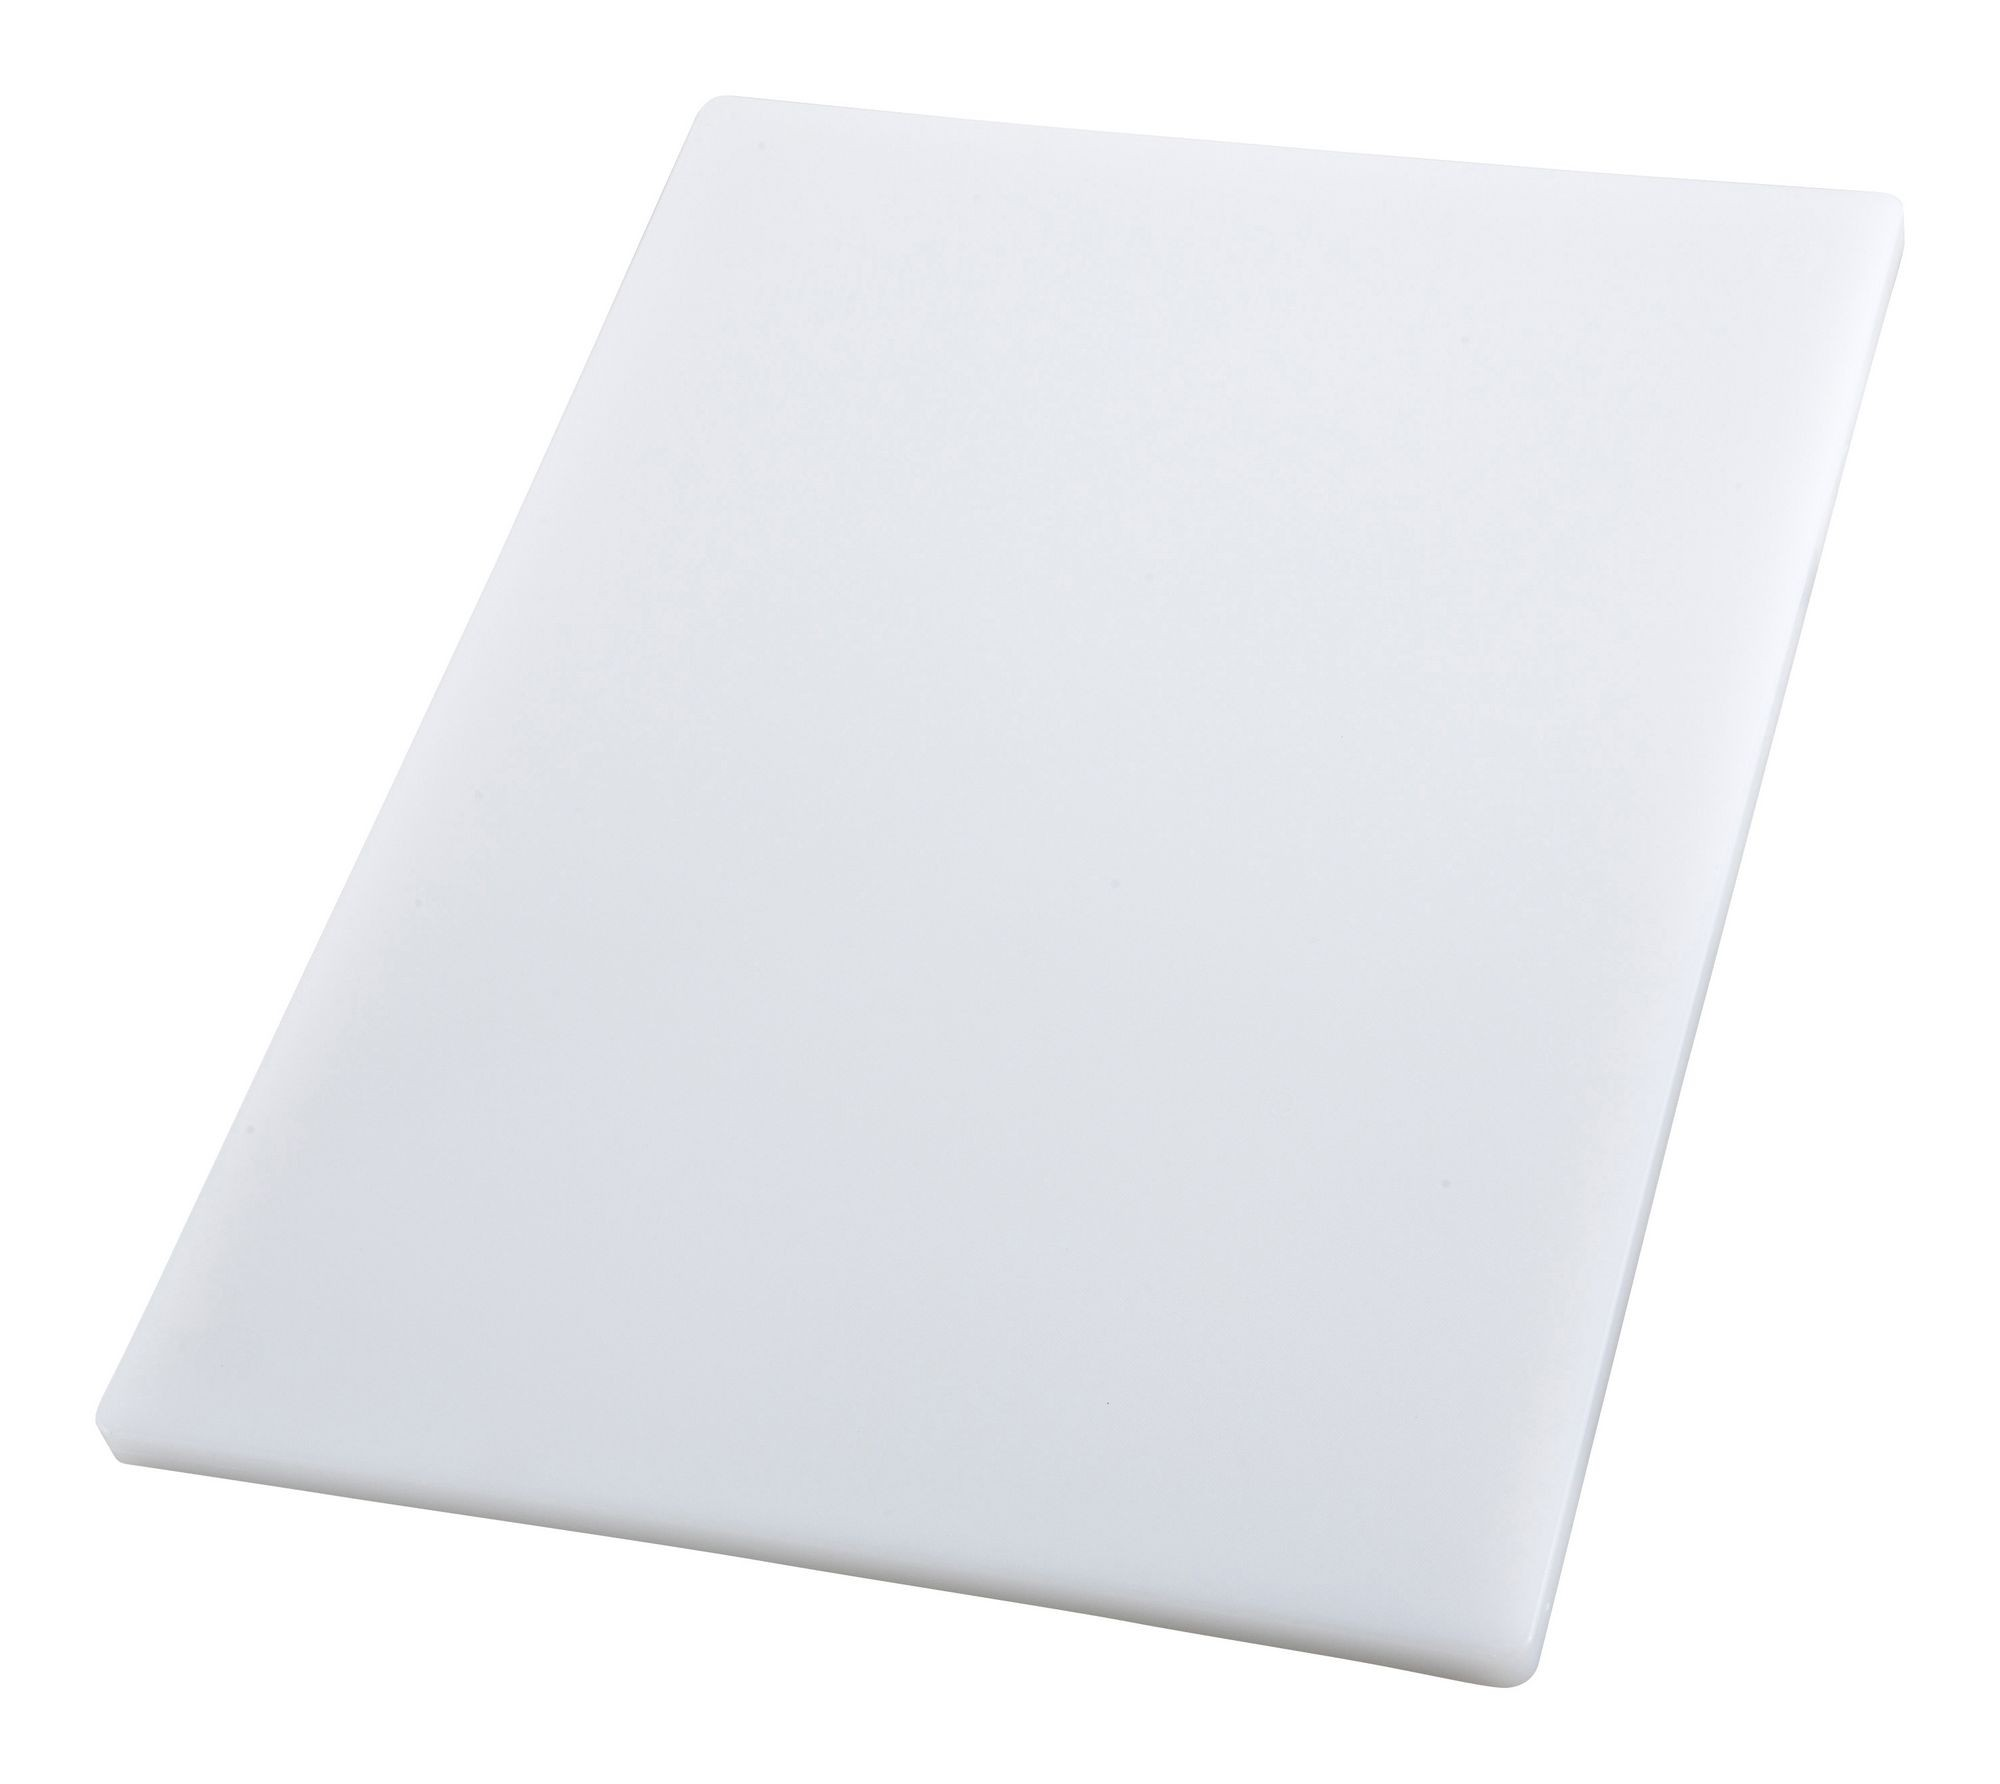 Winco CBH-1824 White Plastic Cutting Board 18 x 24 x 3/4""